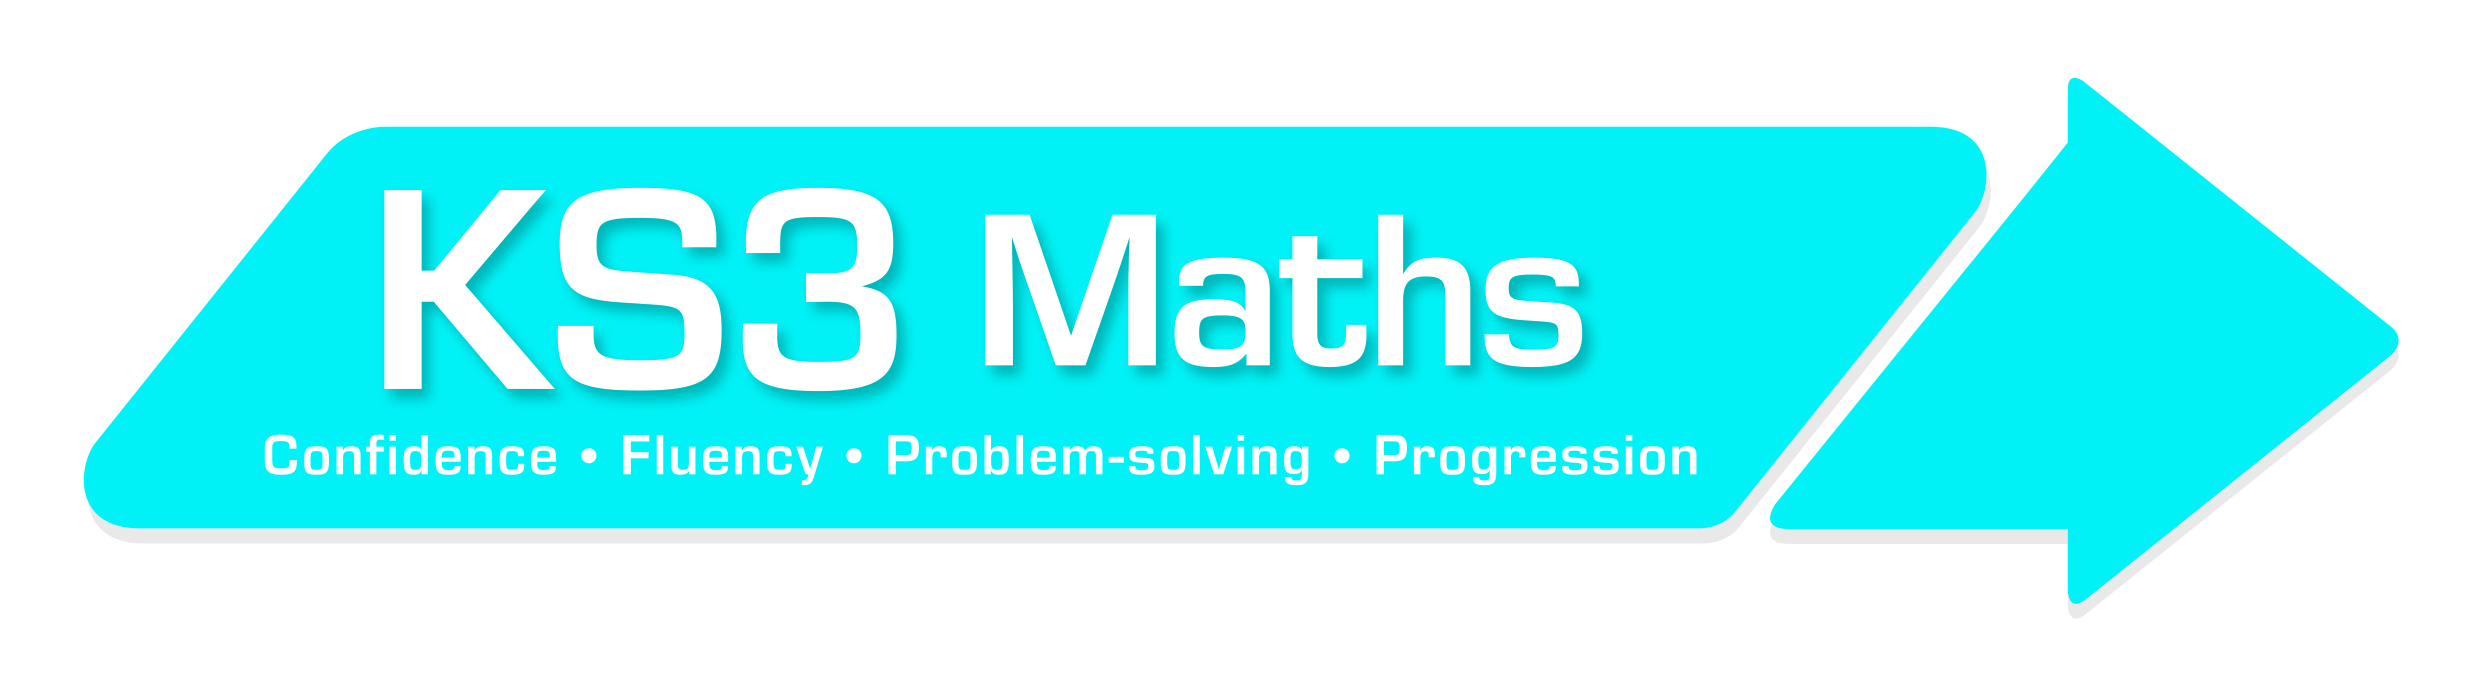 KS3 Maths Logo